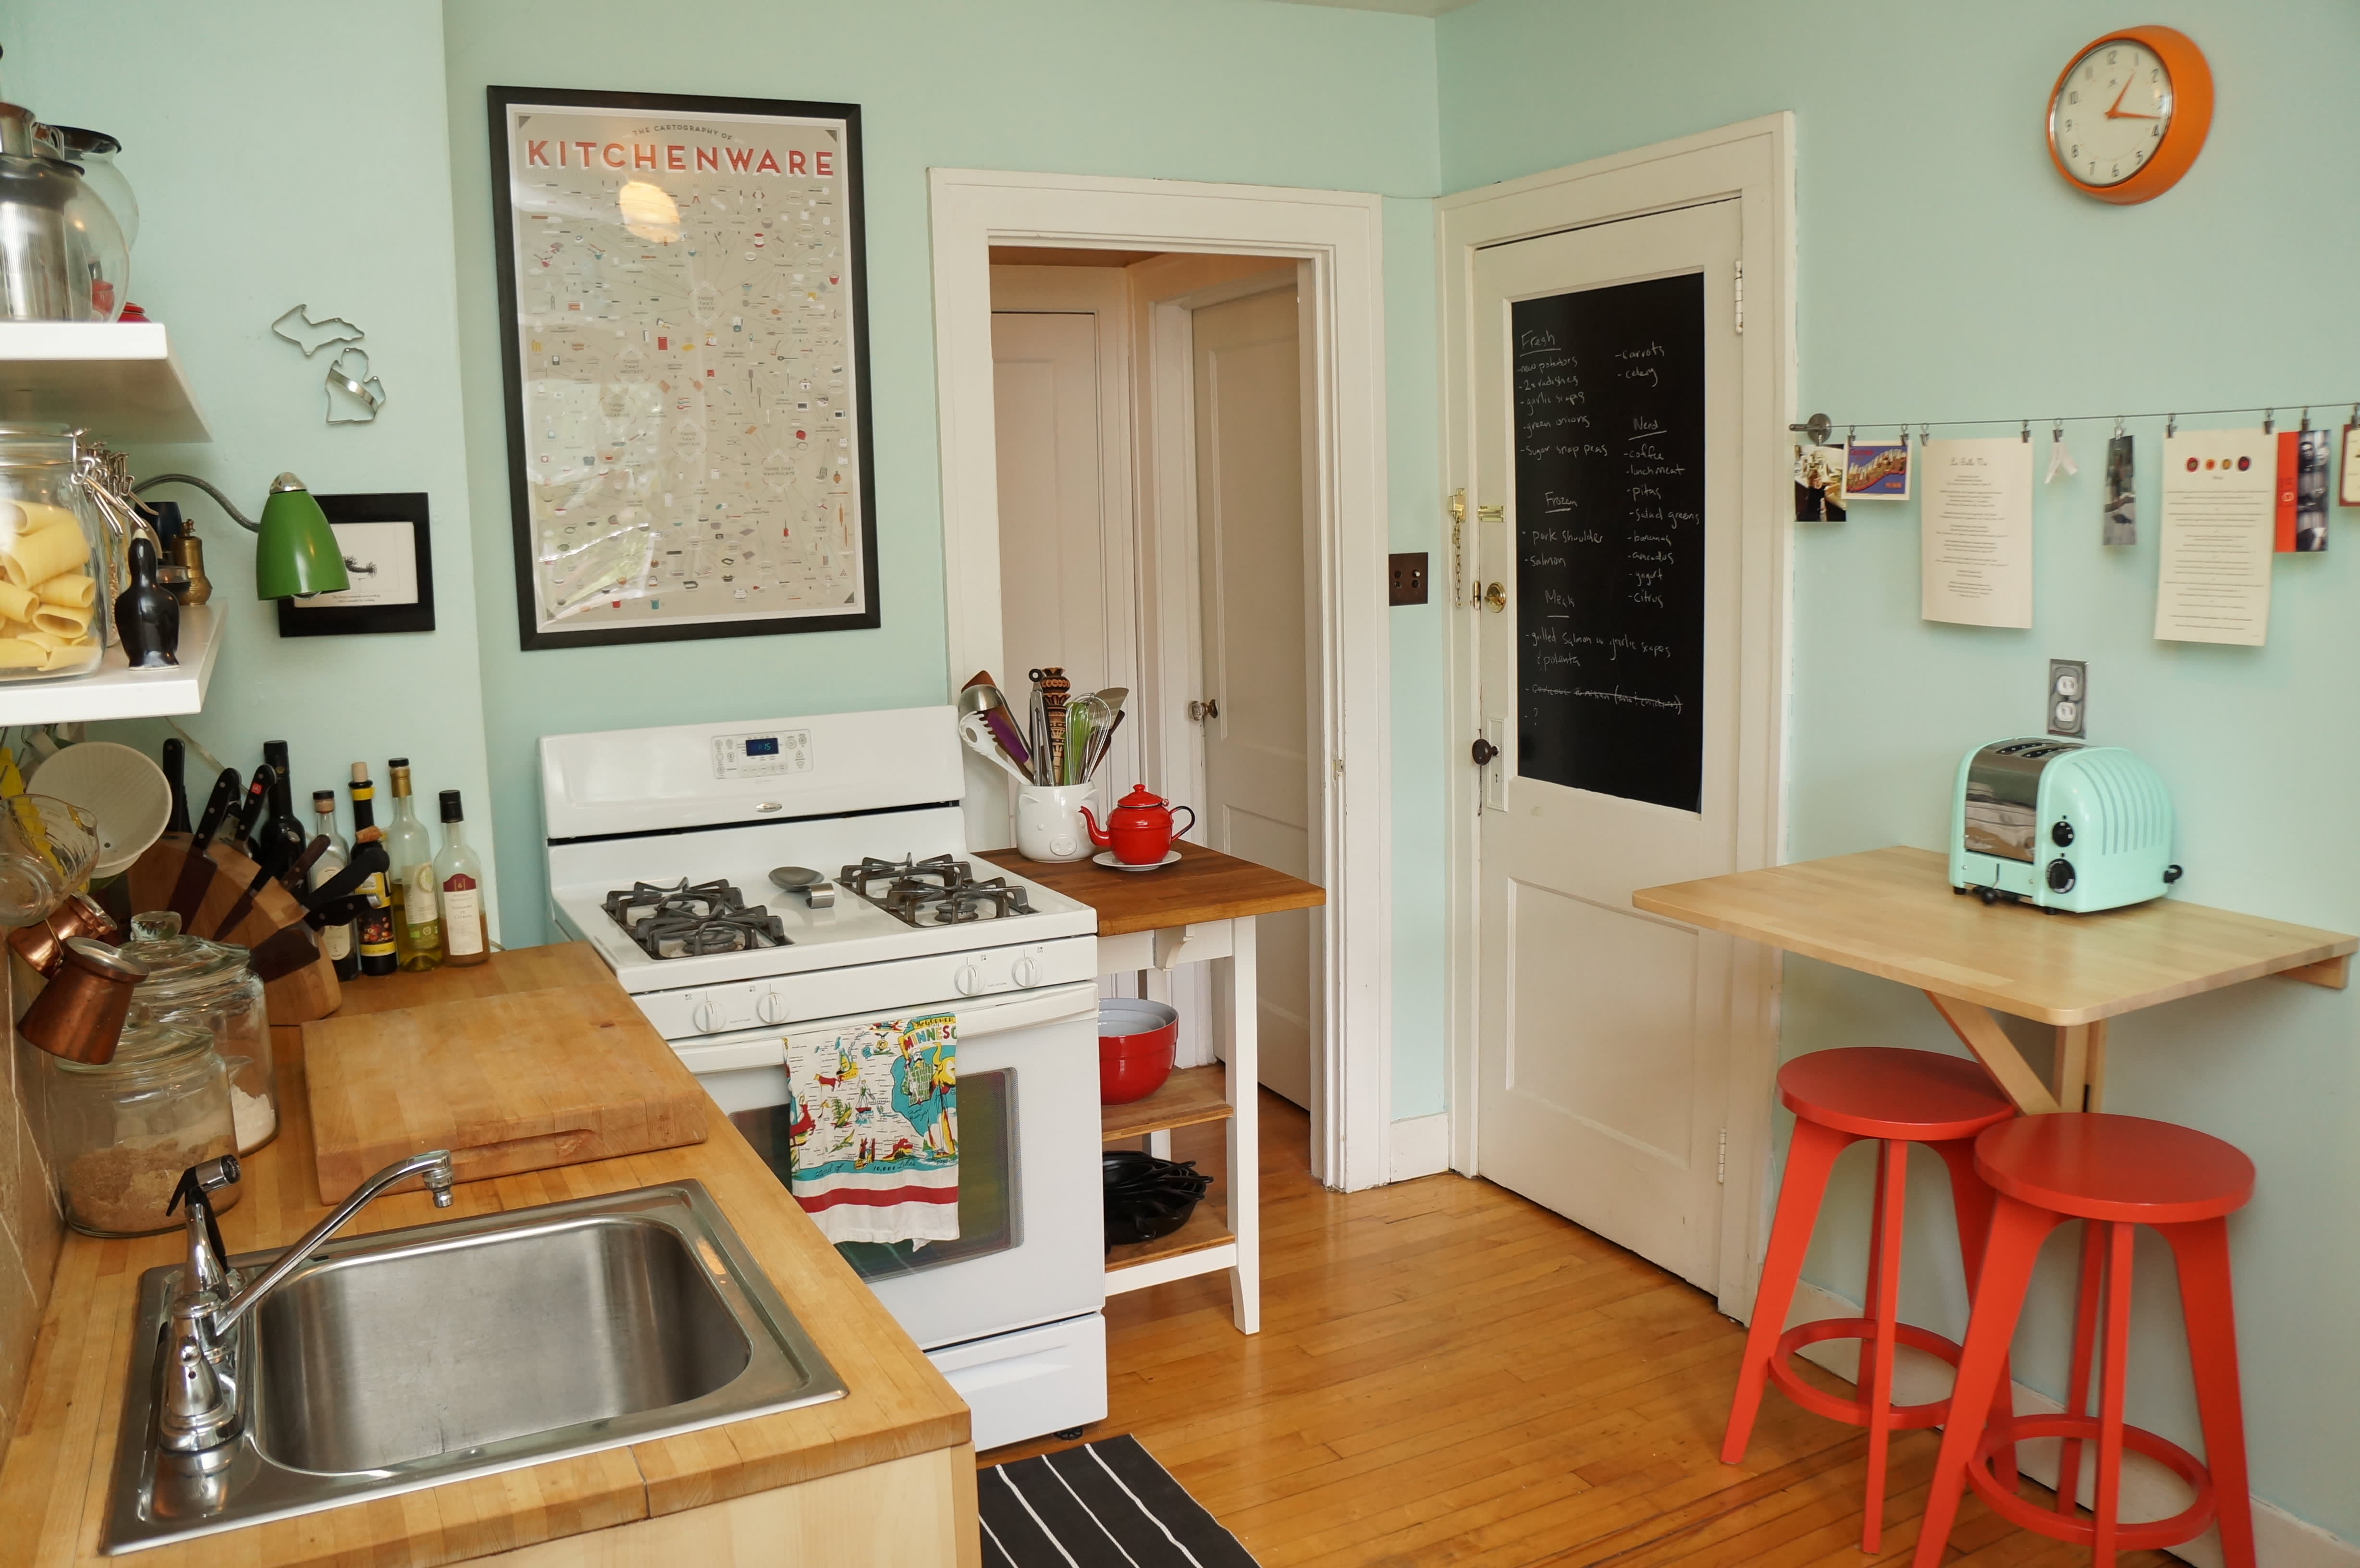 Small Cool Kitchens 2013: Announcing Our 10 Semi-Finalists!: gallery image 10